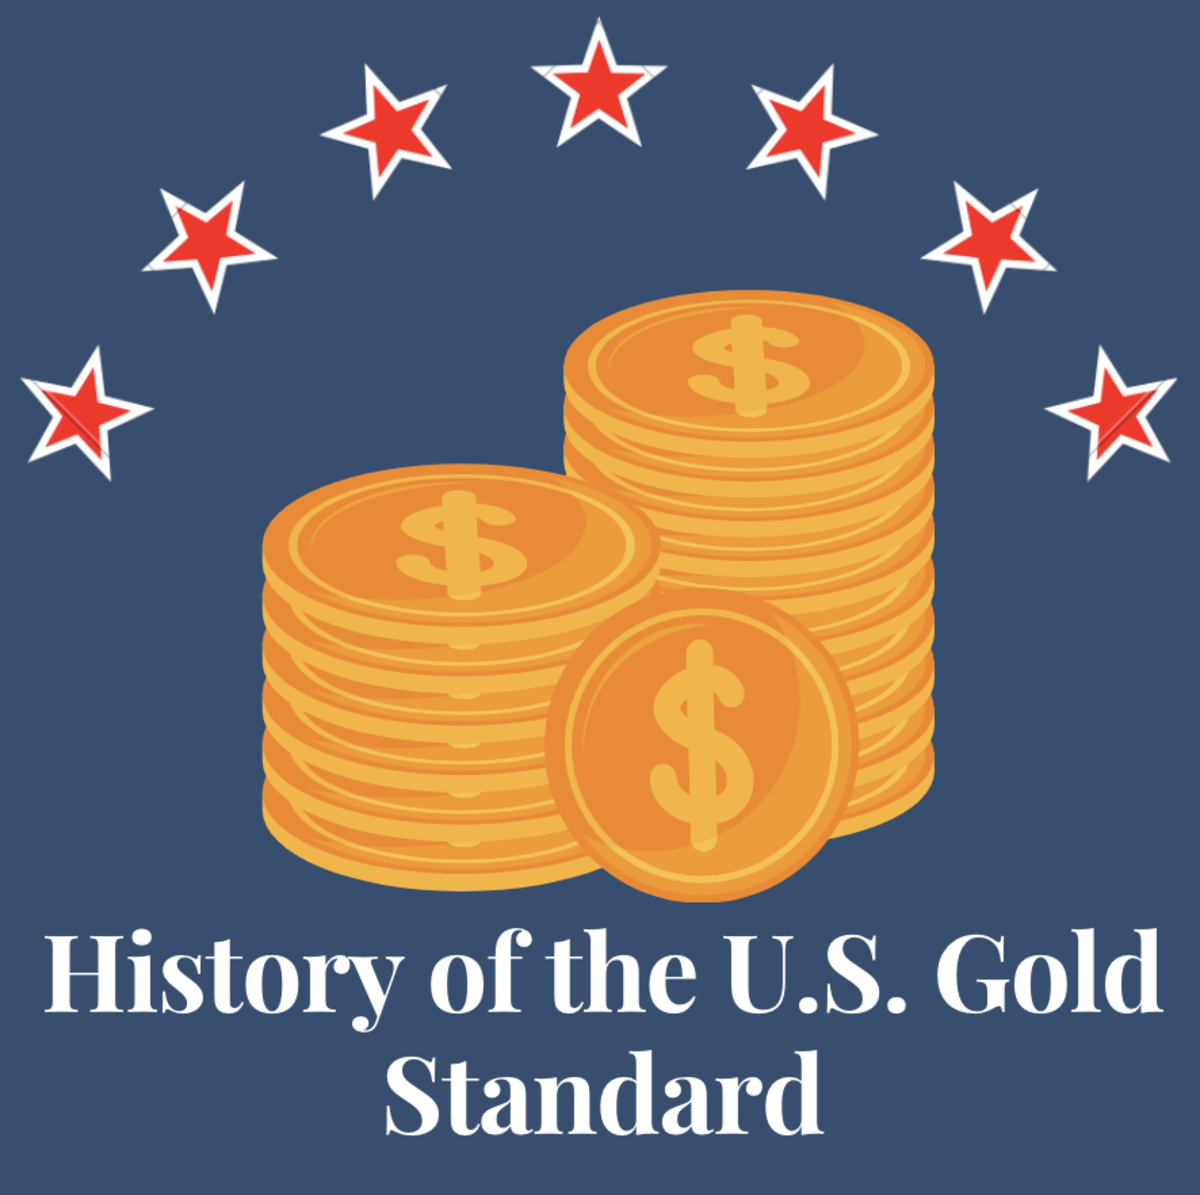 Here is a look at the history of the gold standard in the United States.